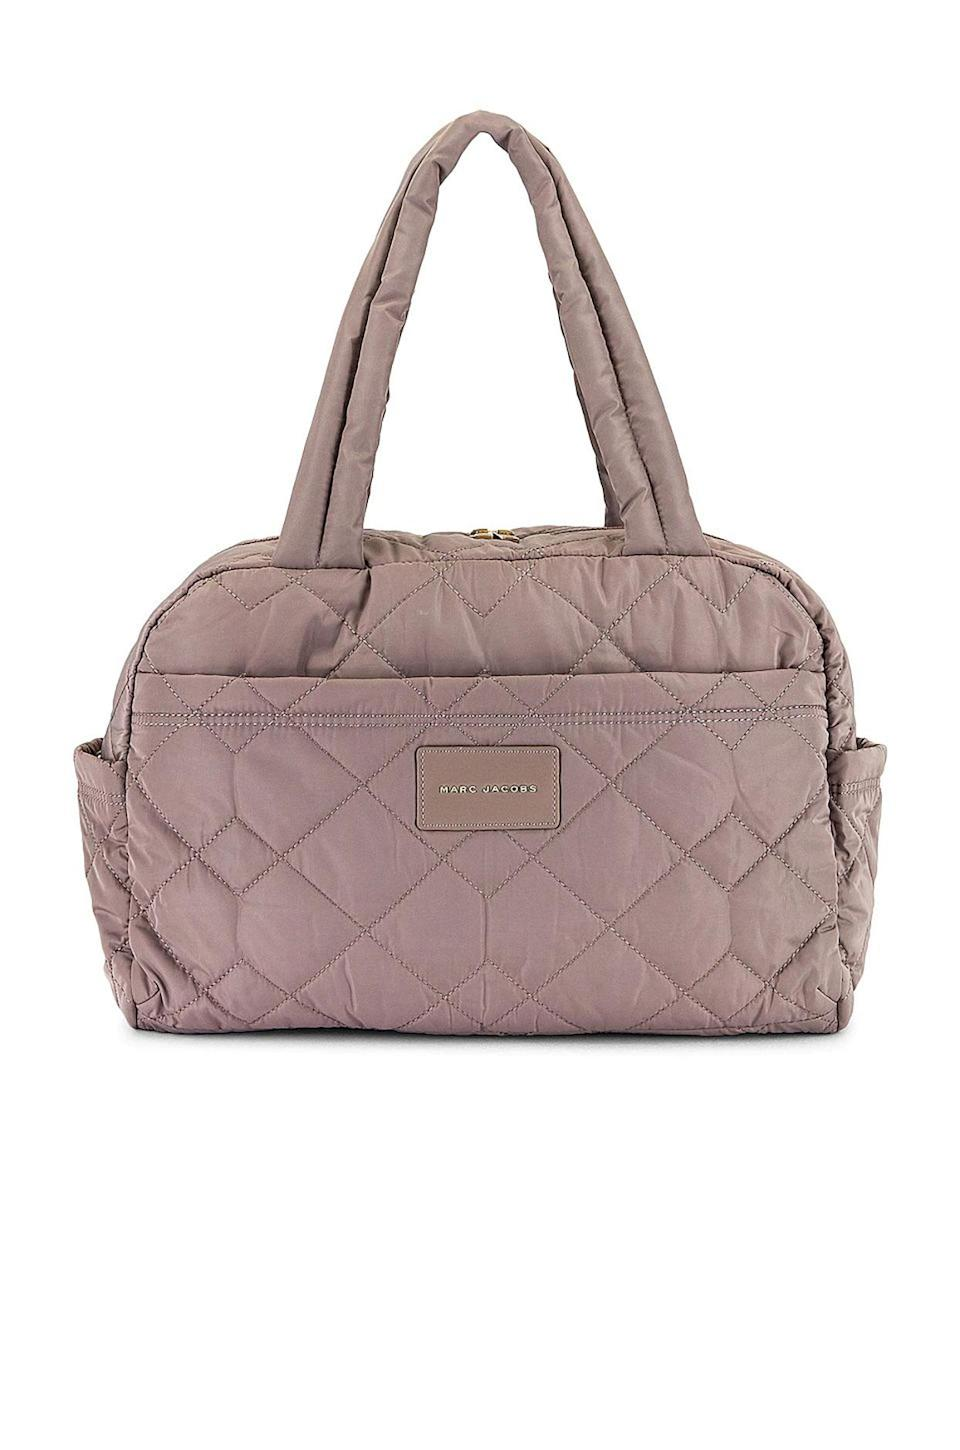 <p>If you're looking for a pretty and practical weekender that isn't oversized but still fits the necessities, this Marc Jacob bag is the solution. It's built for long weekends at the beach or lake, and with tons of compartments and pockets, you'll find it's easier to stay organized and find items in a flash. </p>